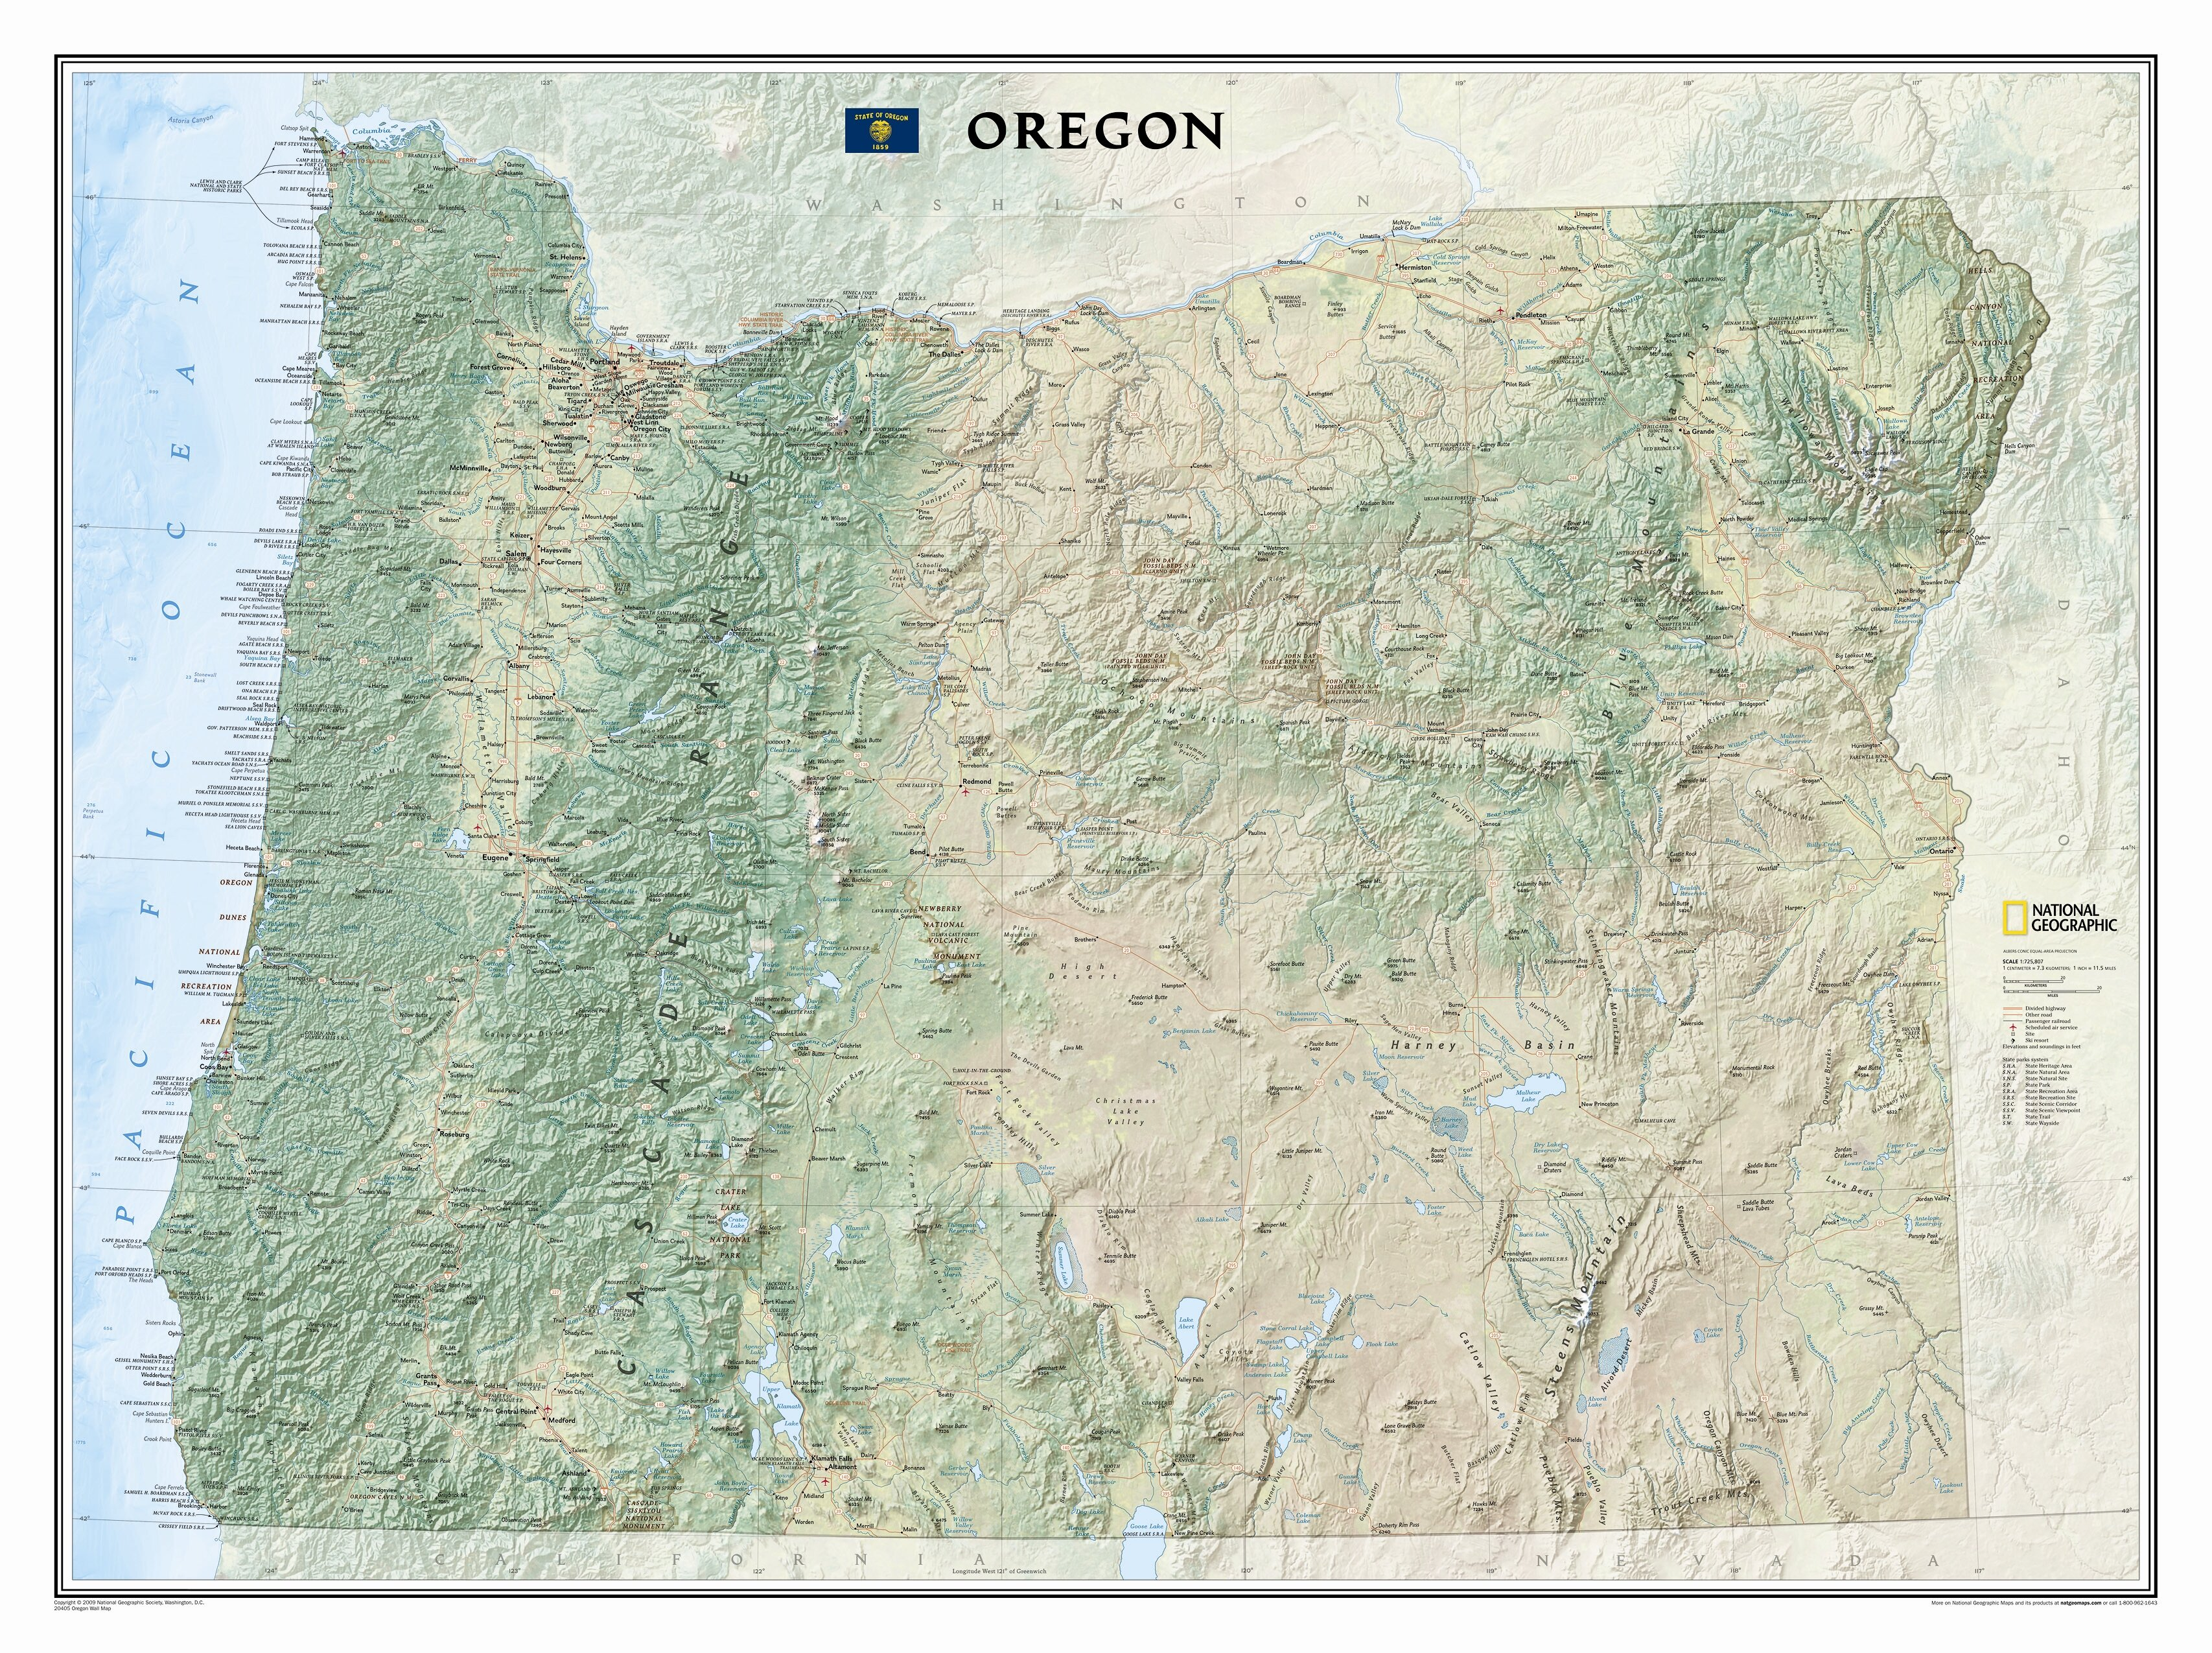 oregon state map National Geographic Maps Oregon State Wall Map Wayfair oregon state map